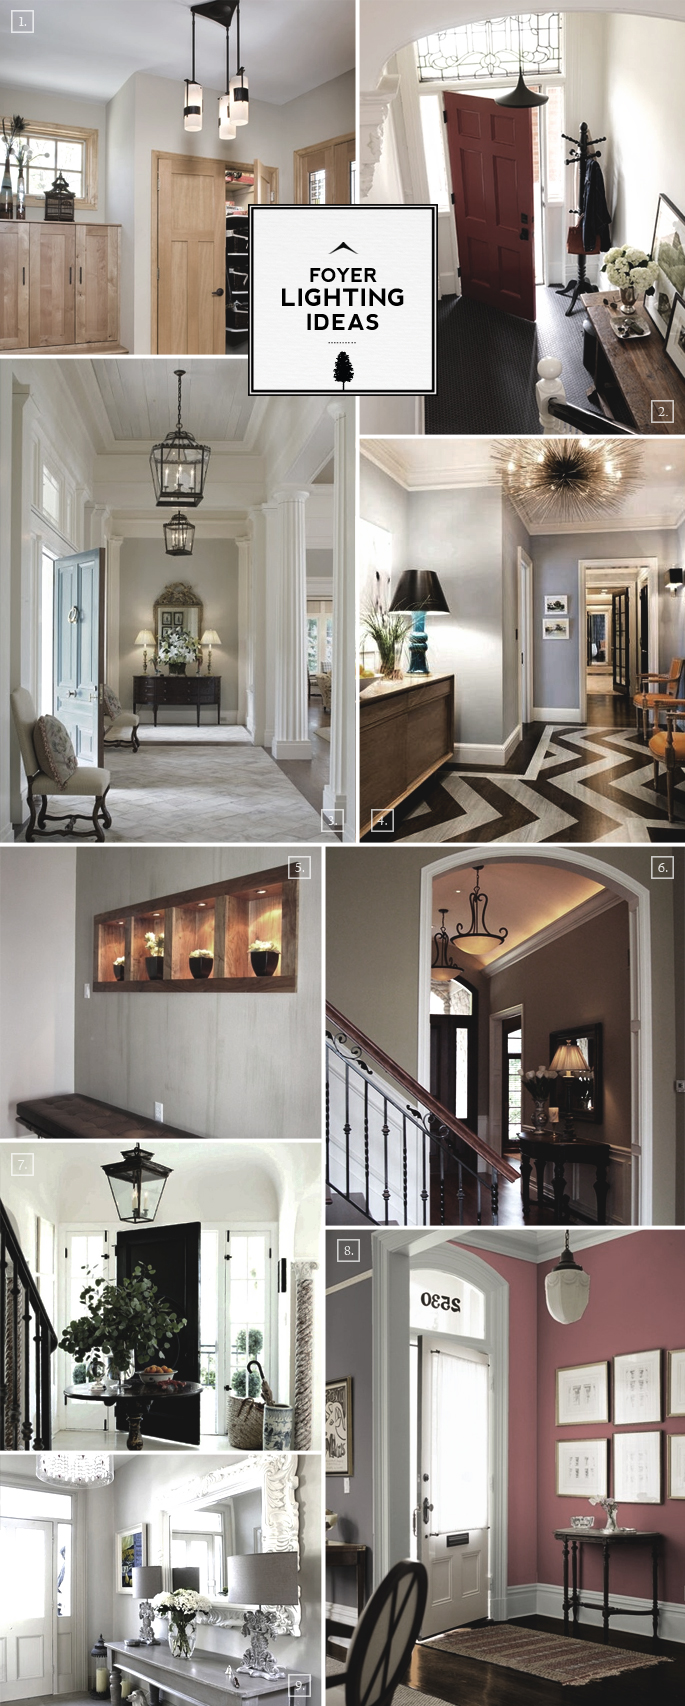 Entry foyer lighting ideas for large and small spaces - Lighting ideas for halls and foyers ...